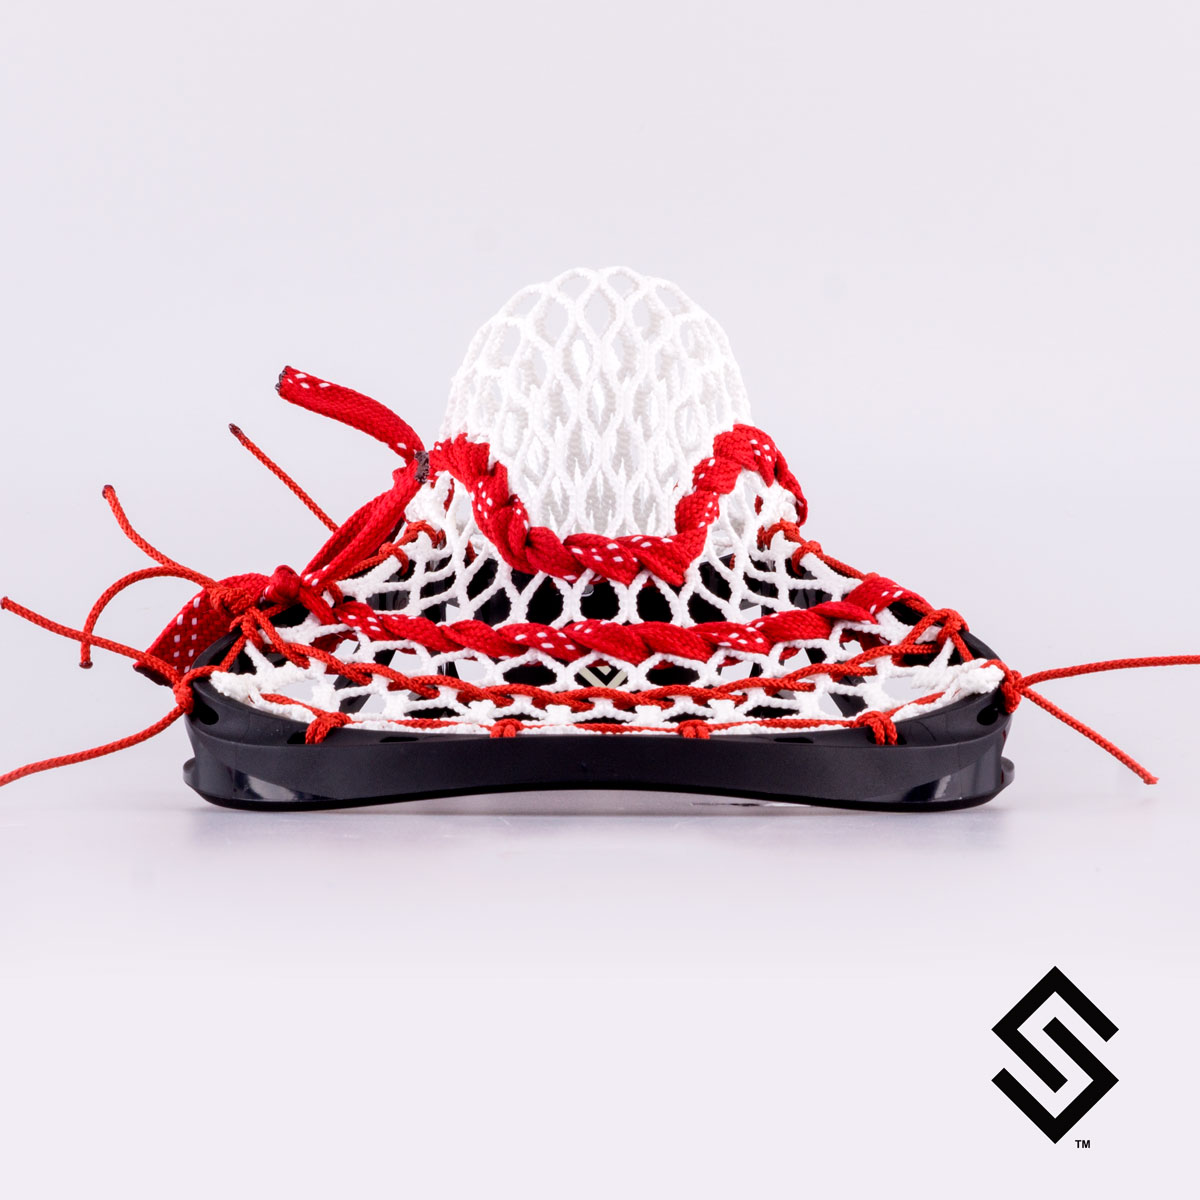 Jimalax - JimaMID Lacrosse Pocket by Stylin Strings